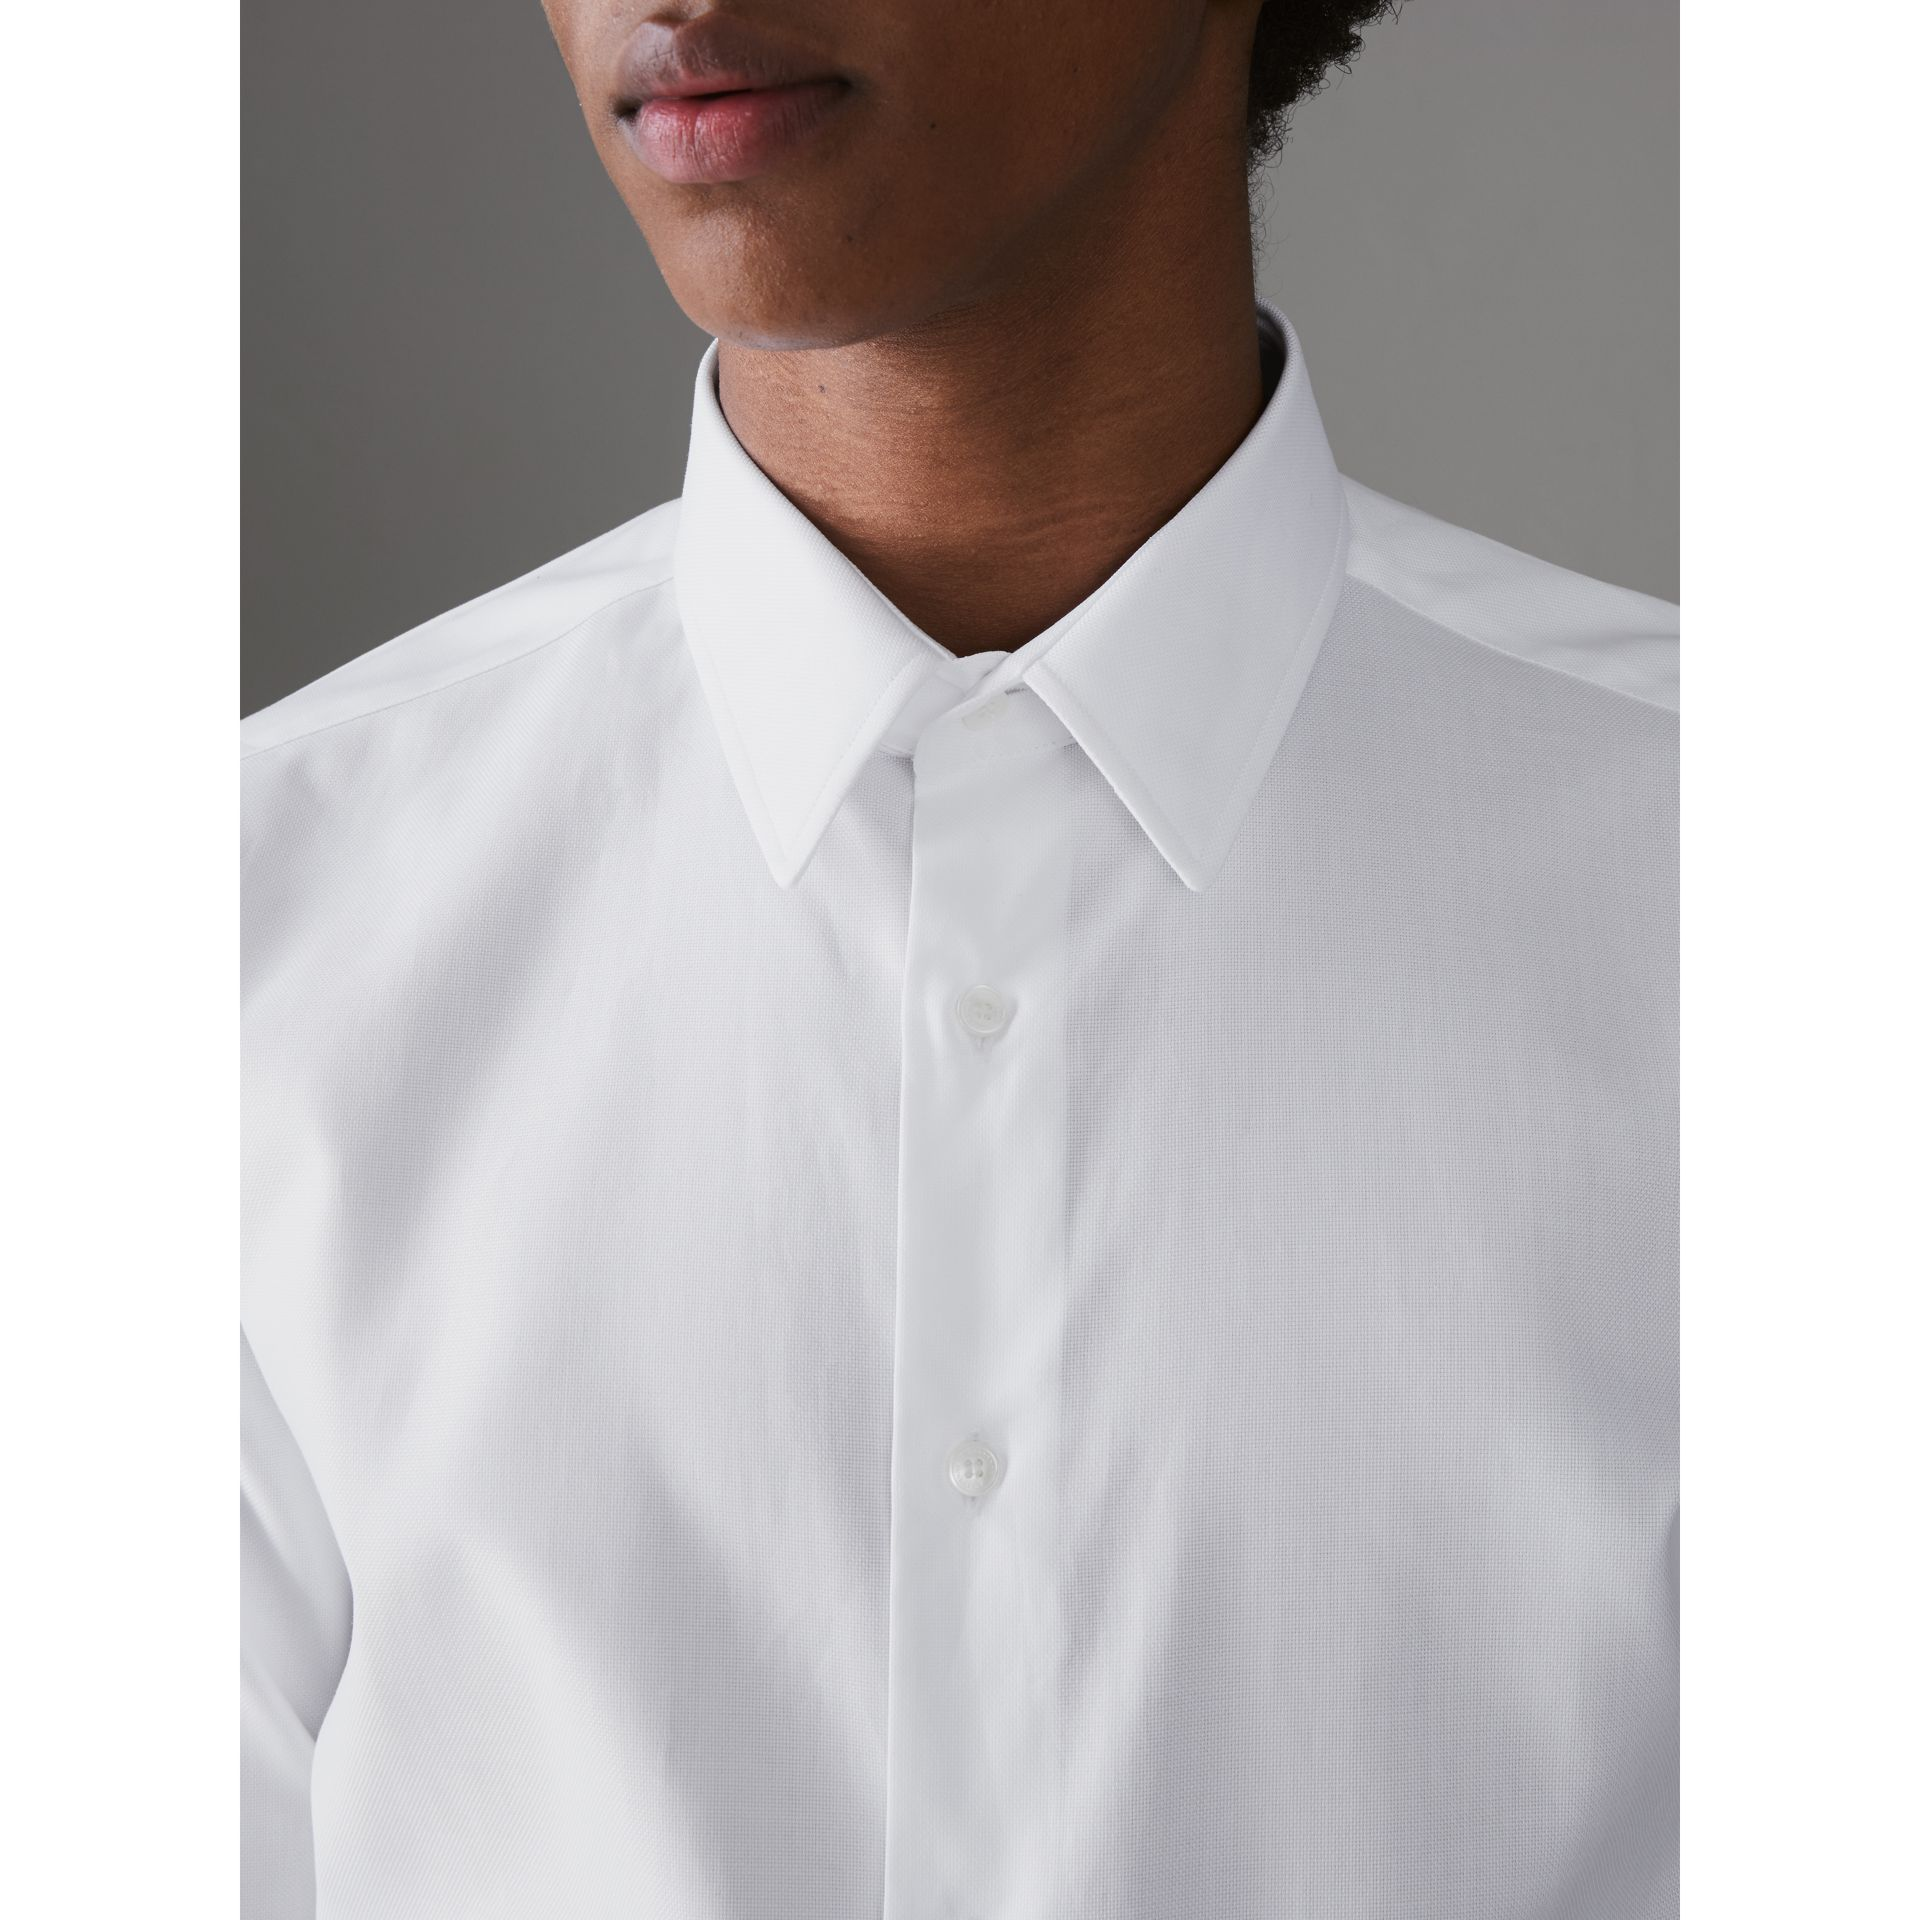 Modern Fit Cotton Shirt in White - Men | Burberry Australia - gallery image 1